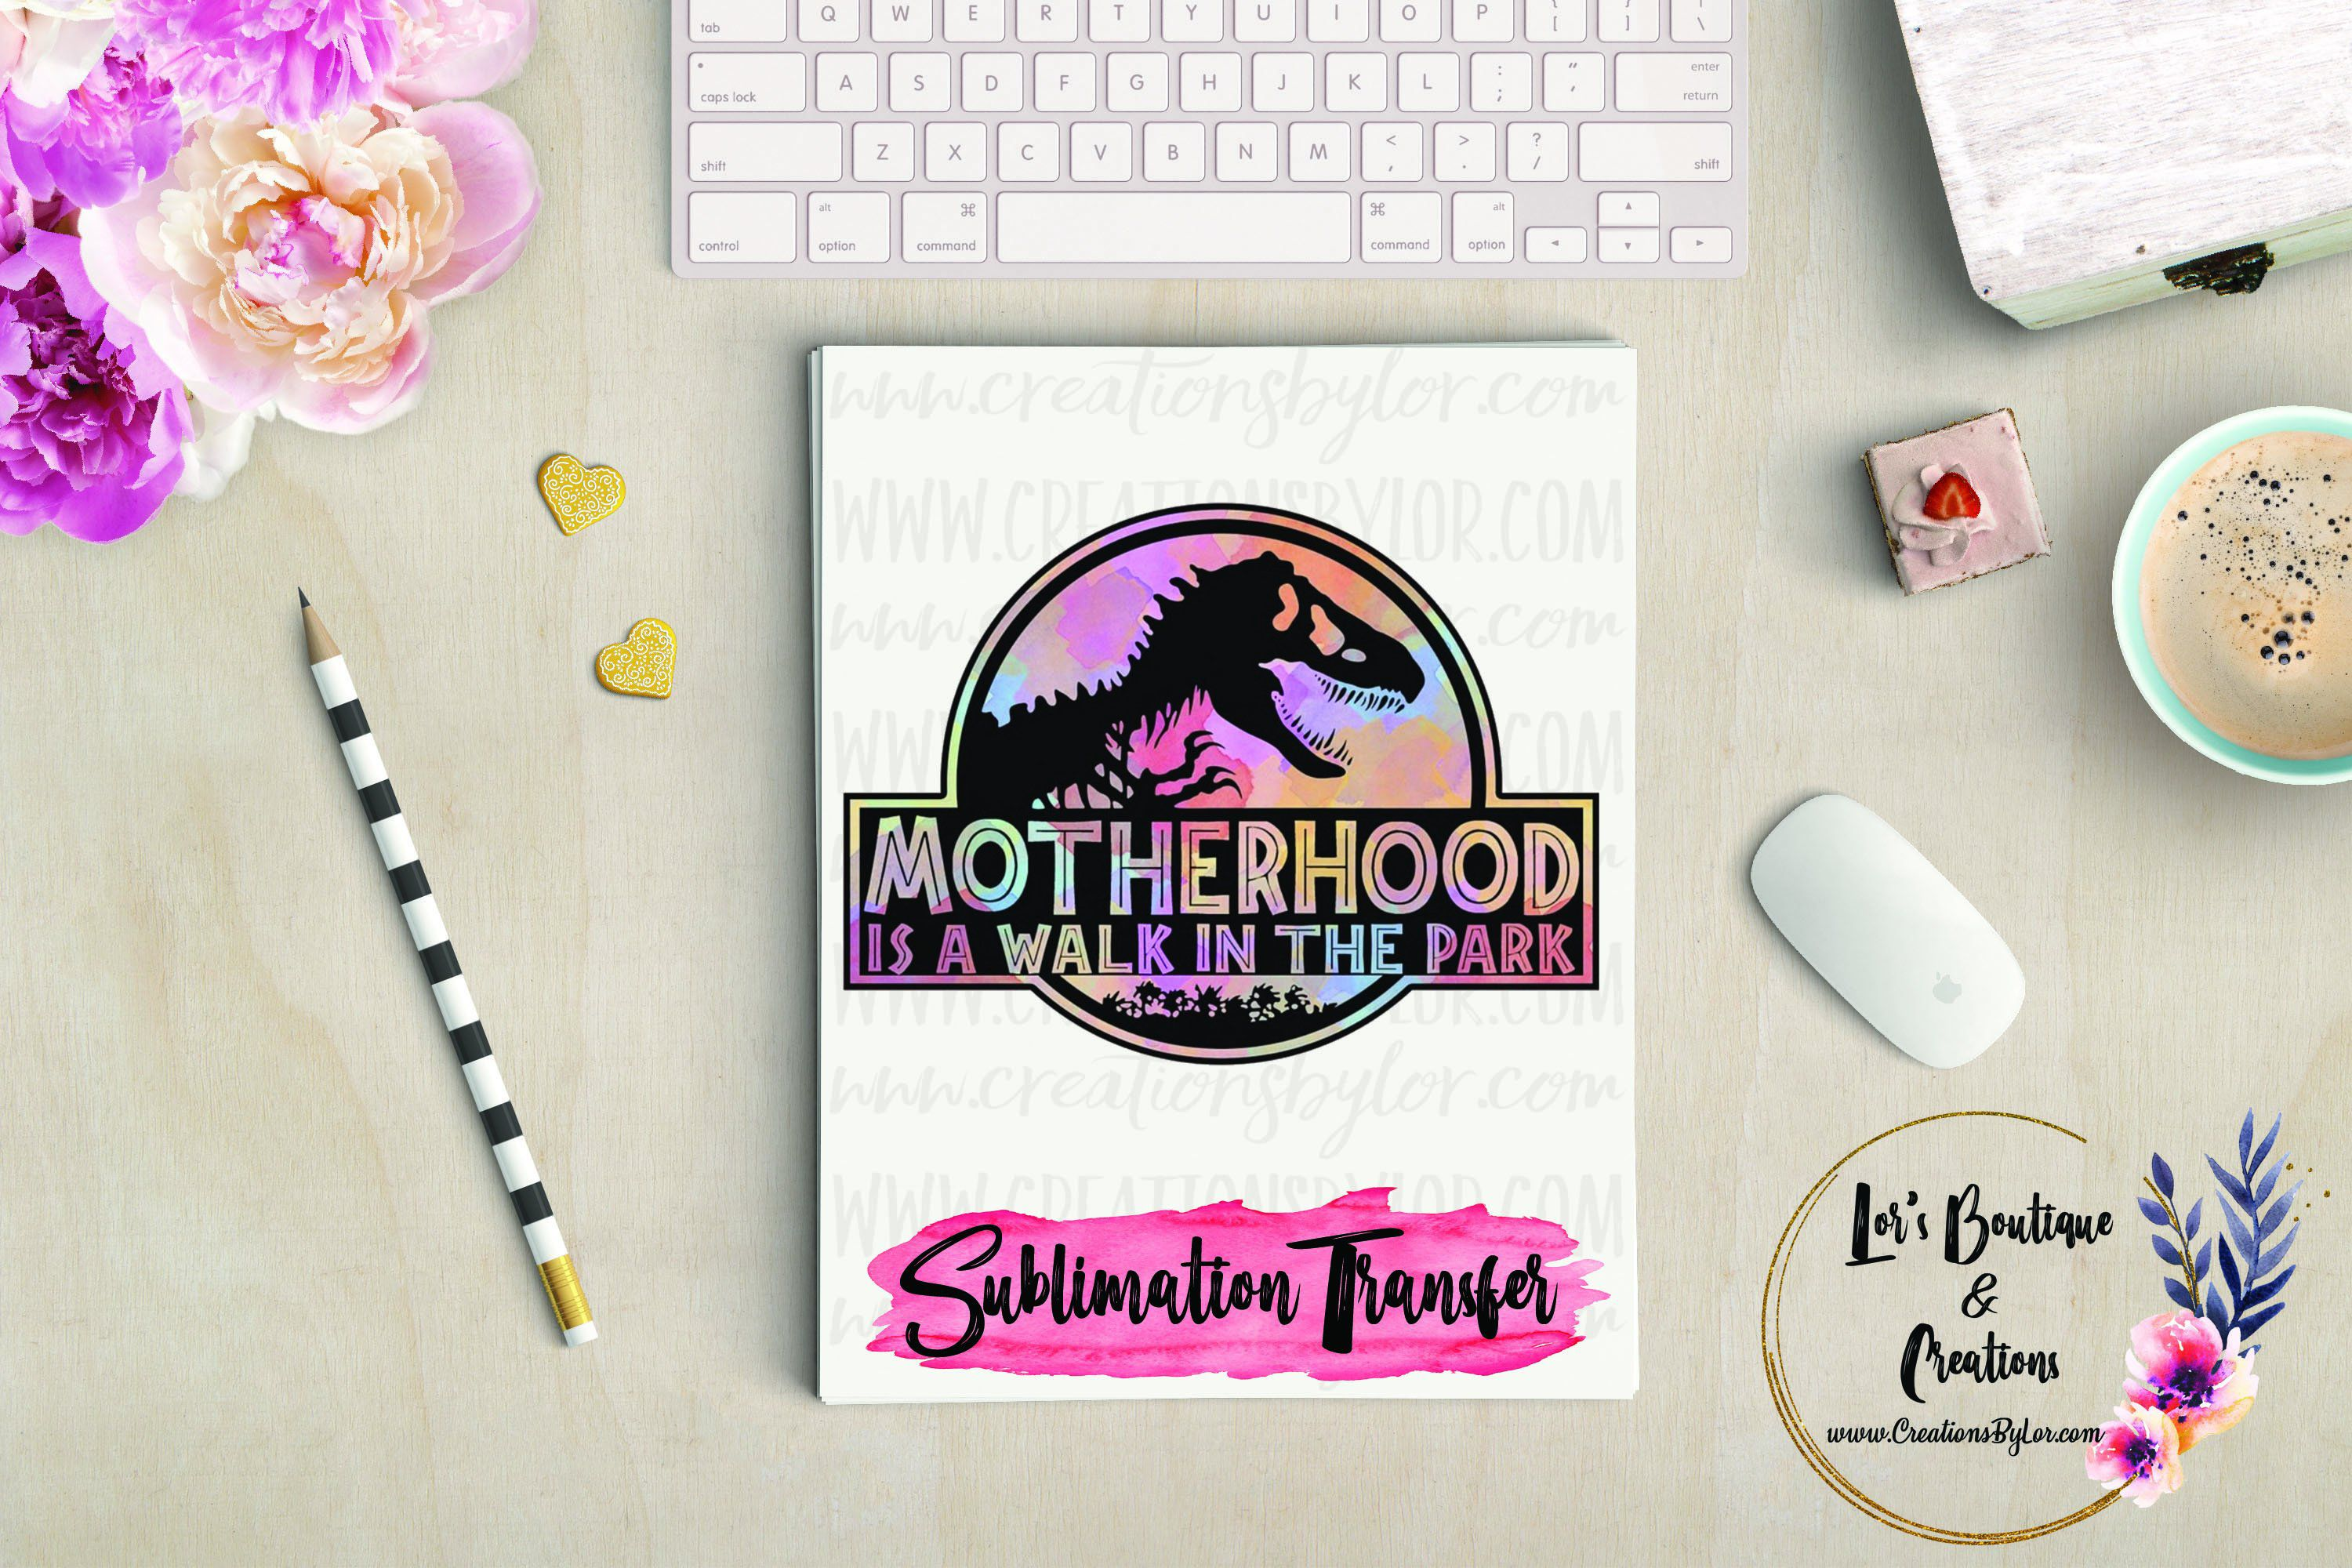 Excited to share this item from my etsy shop Motherhood